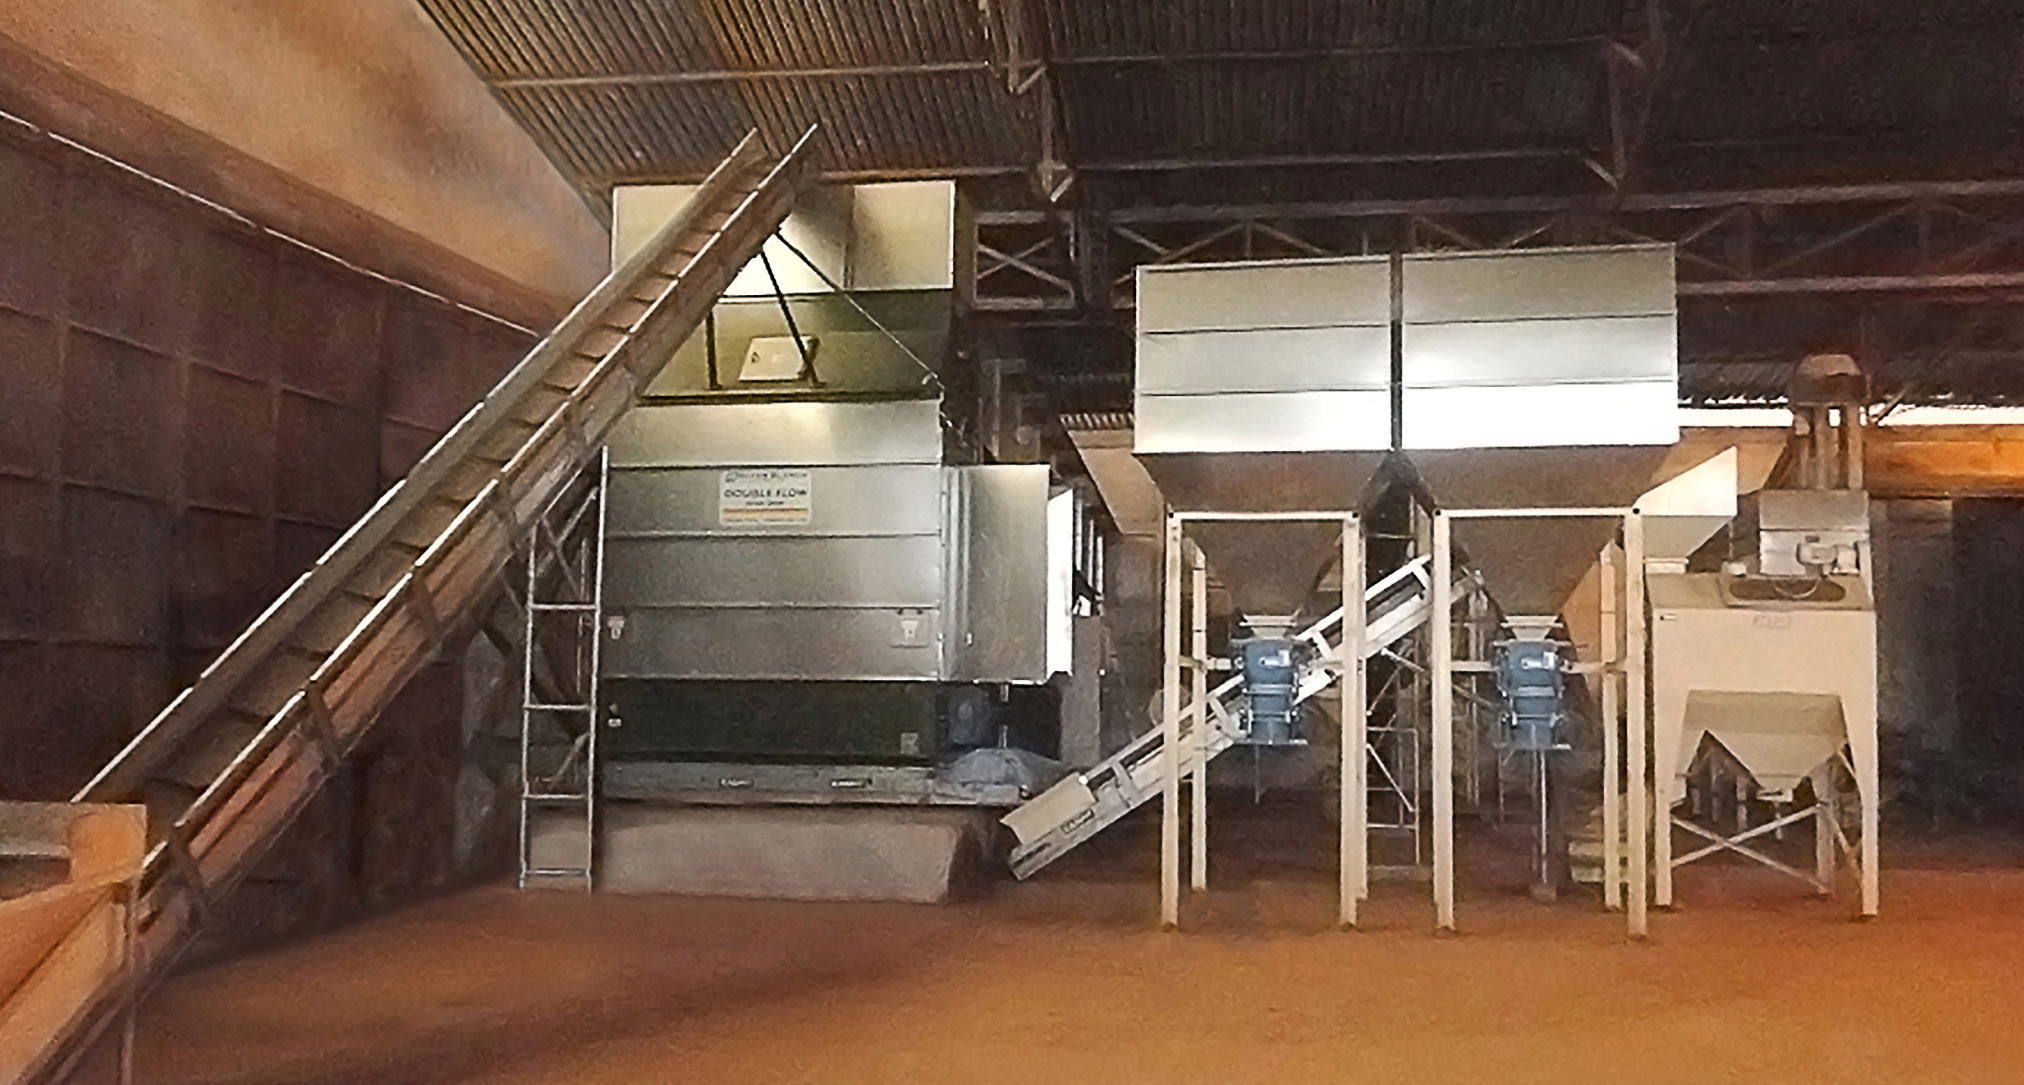 Alvan Blanch Cocoa Drying and Cleaning System Guinea Page 1 Image 0001